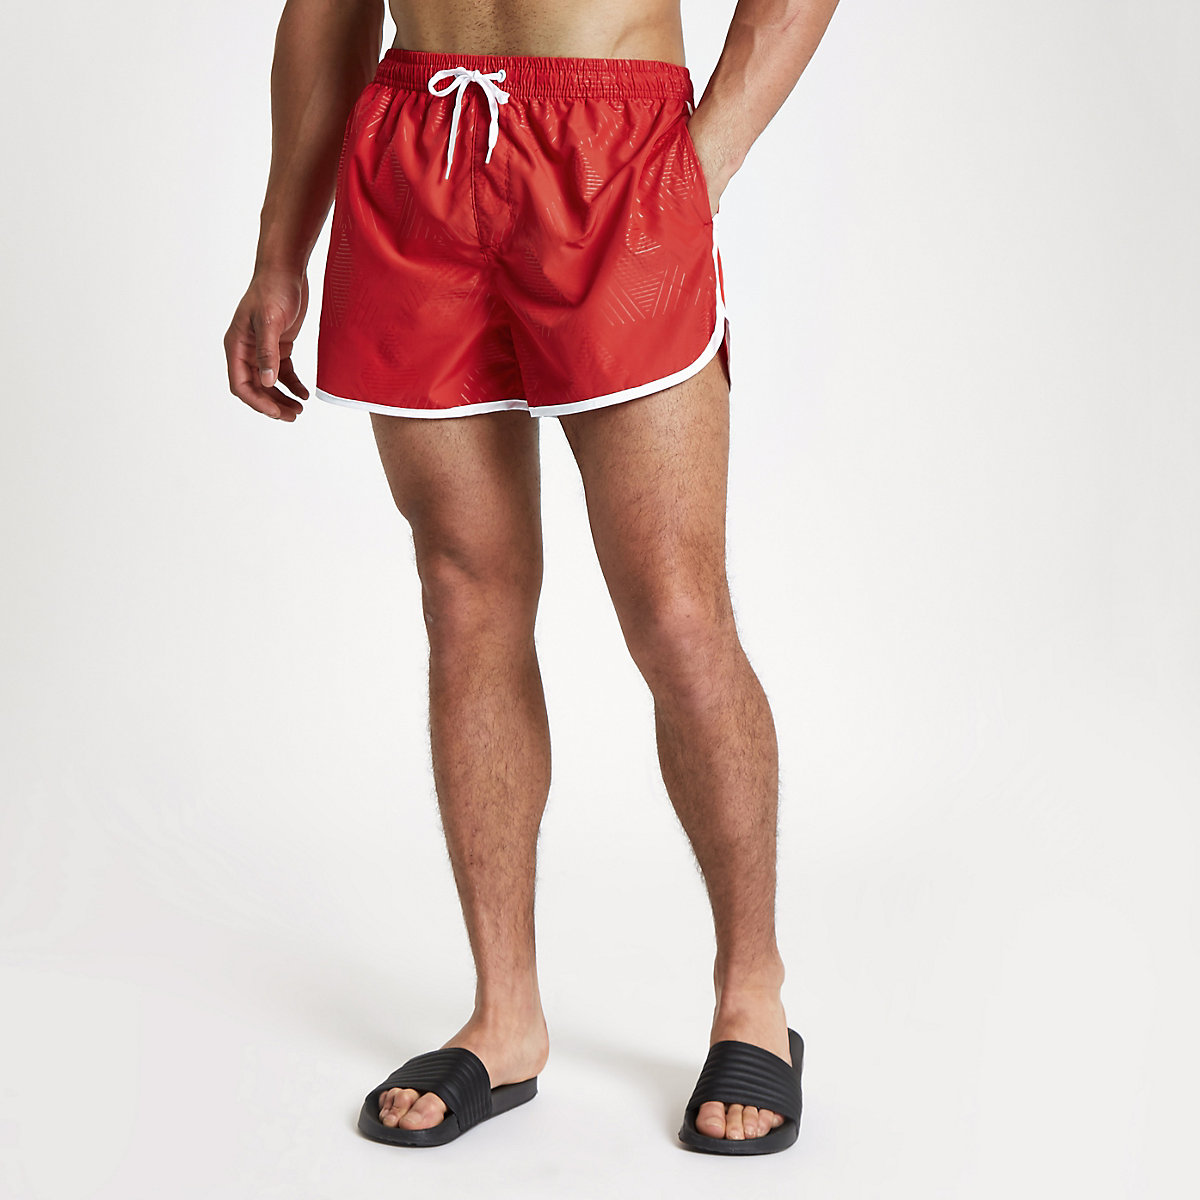 Football Bolt red runner swim shorts